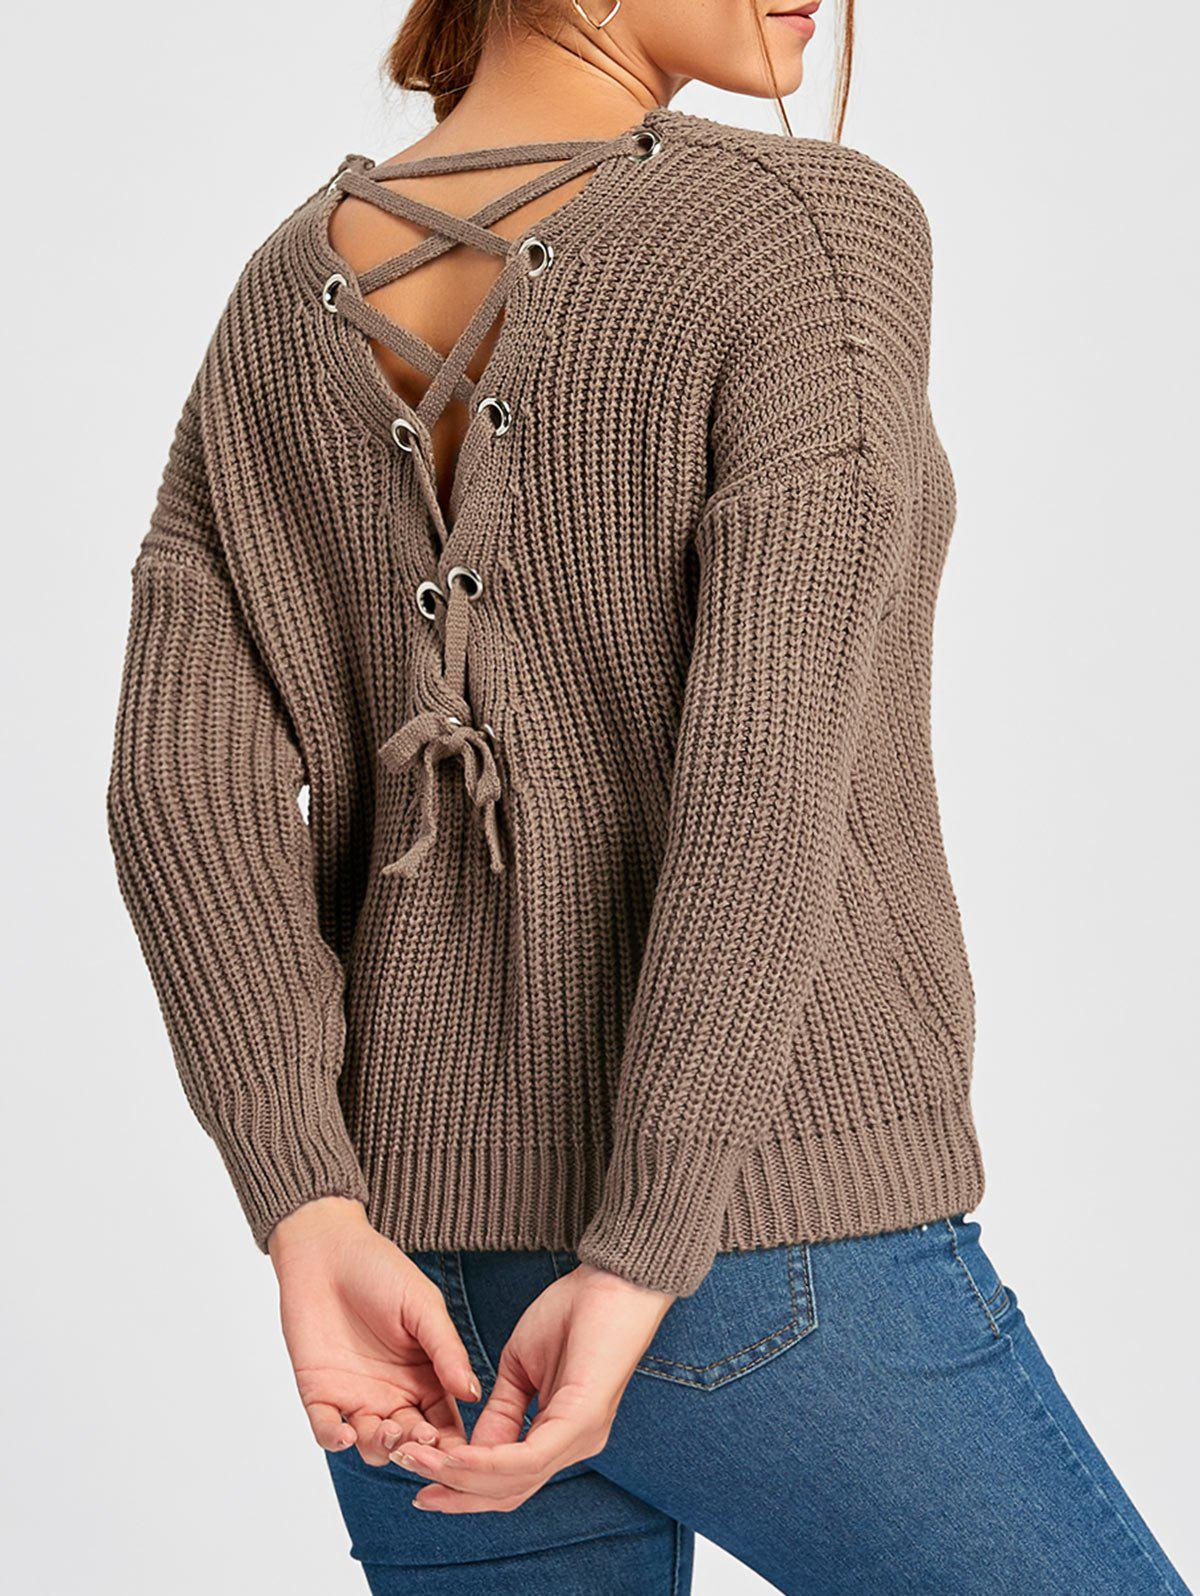 Back Lace-up Scoop Neck Sweater - COFFEE ONE SIZE